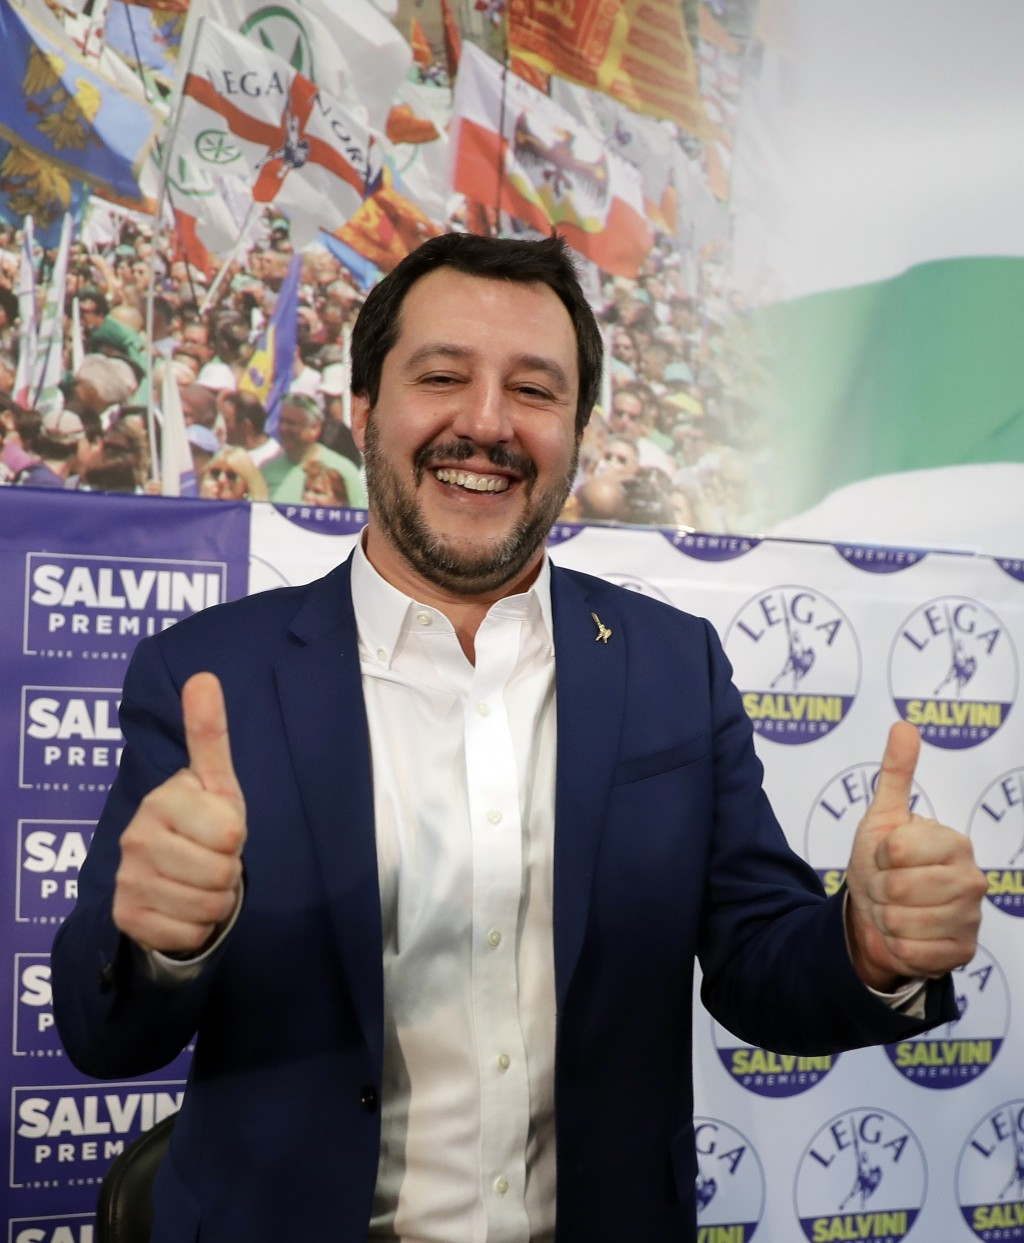 Right-wing, anti-immigrant and euroskeptic League's Matteo Salvini gives the thumbs up at the end of a press conference on the preliminary election re...